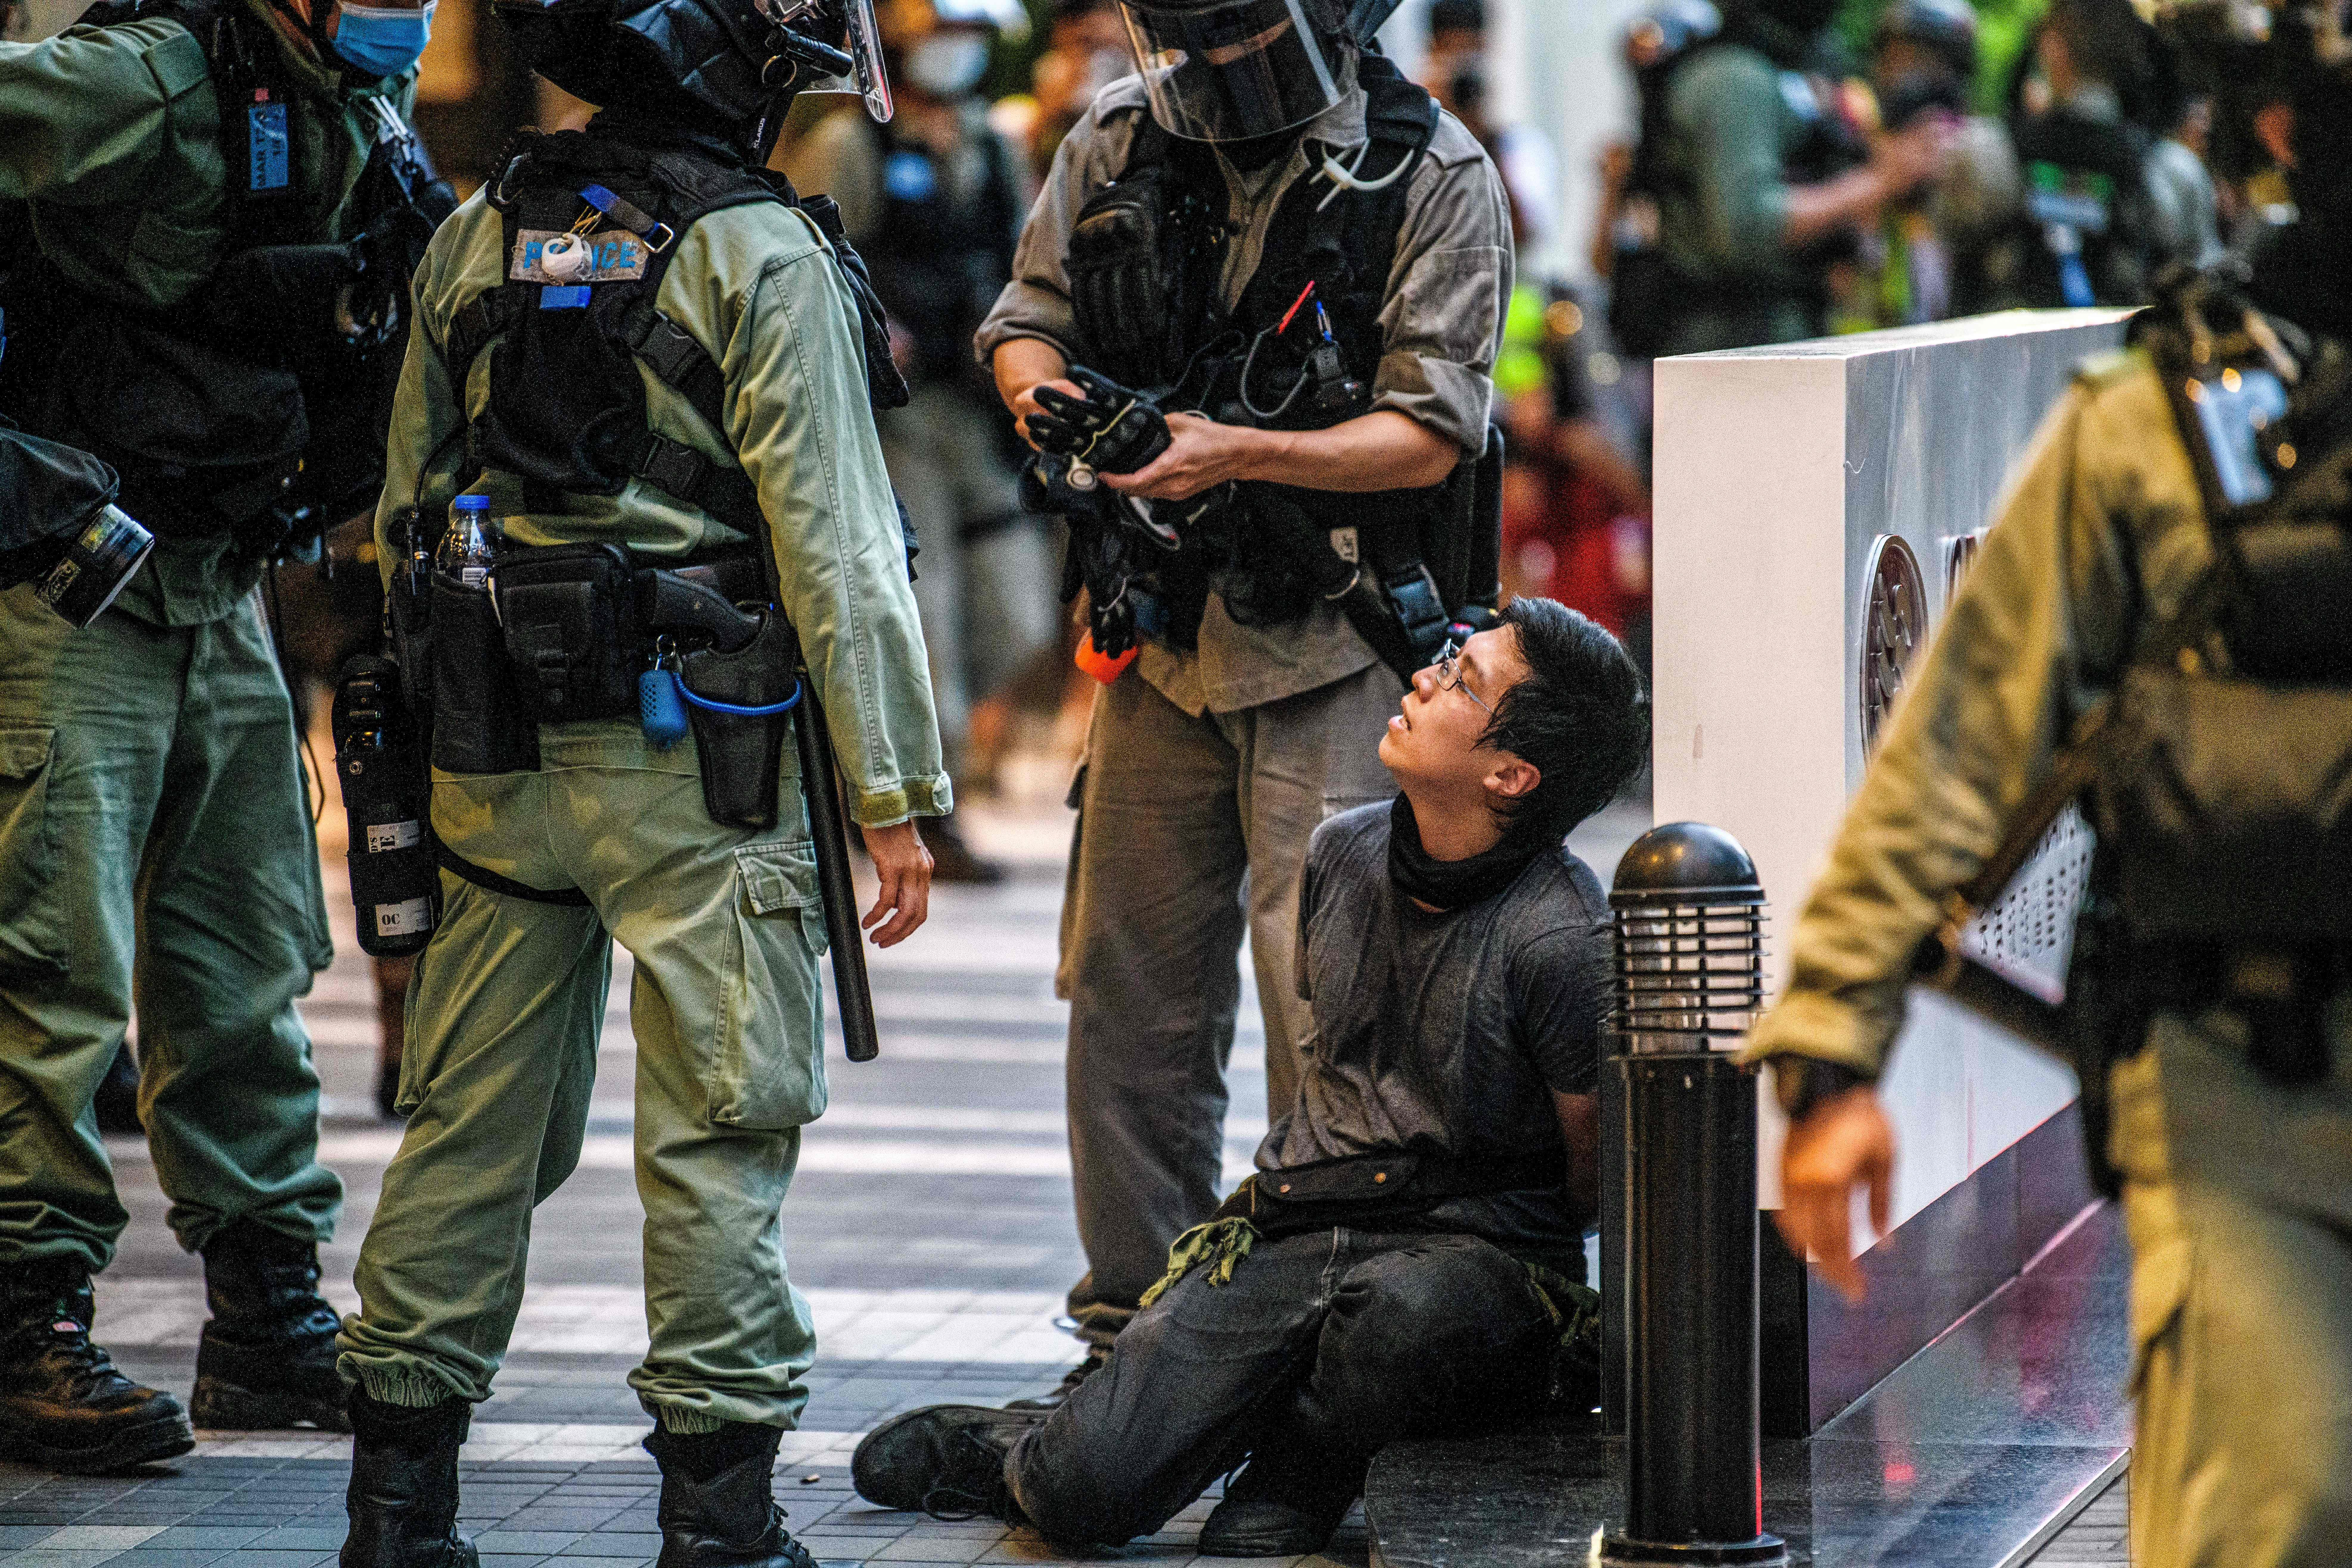 A protester is detained by police during a rally against a new national security law in Hong Kong on July 1, 2020. (Photo: Anthony Wallace/AFP via Getty Images)